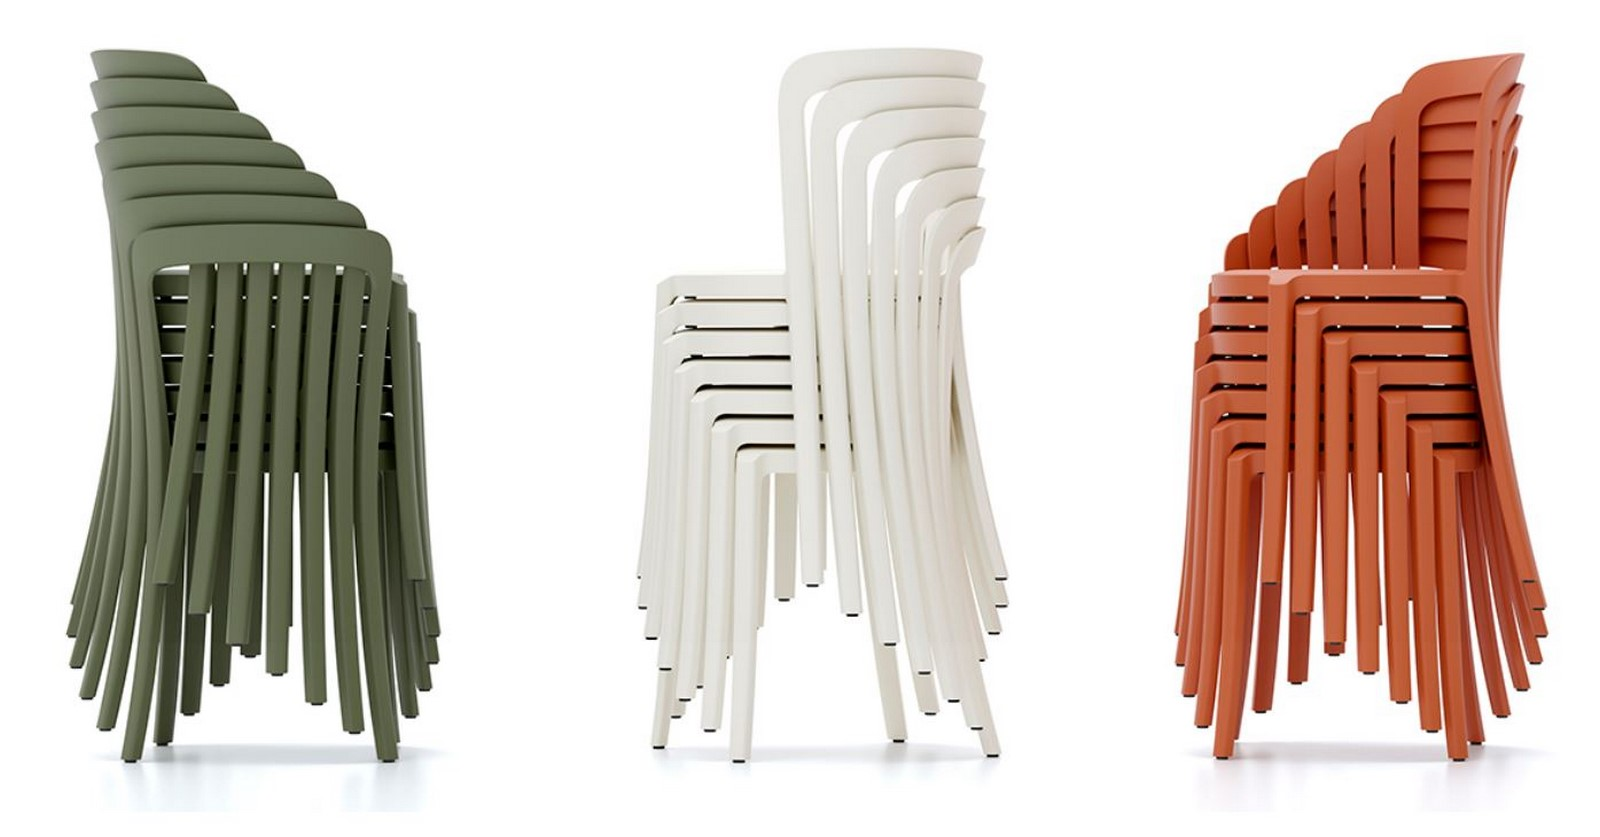 On and on collection: Emeco + Barber & Osgerby - Sheet3